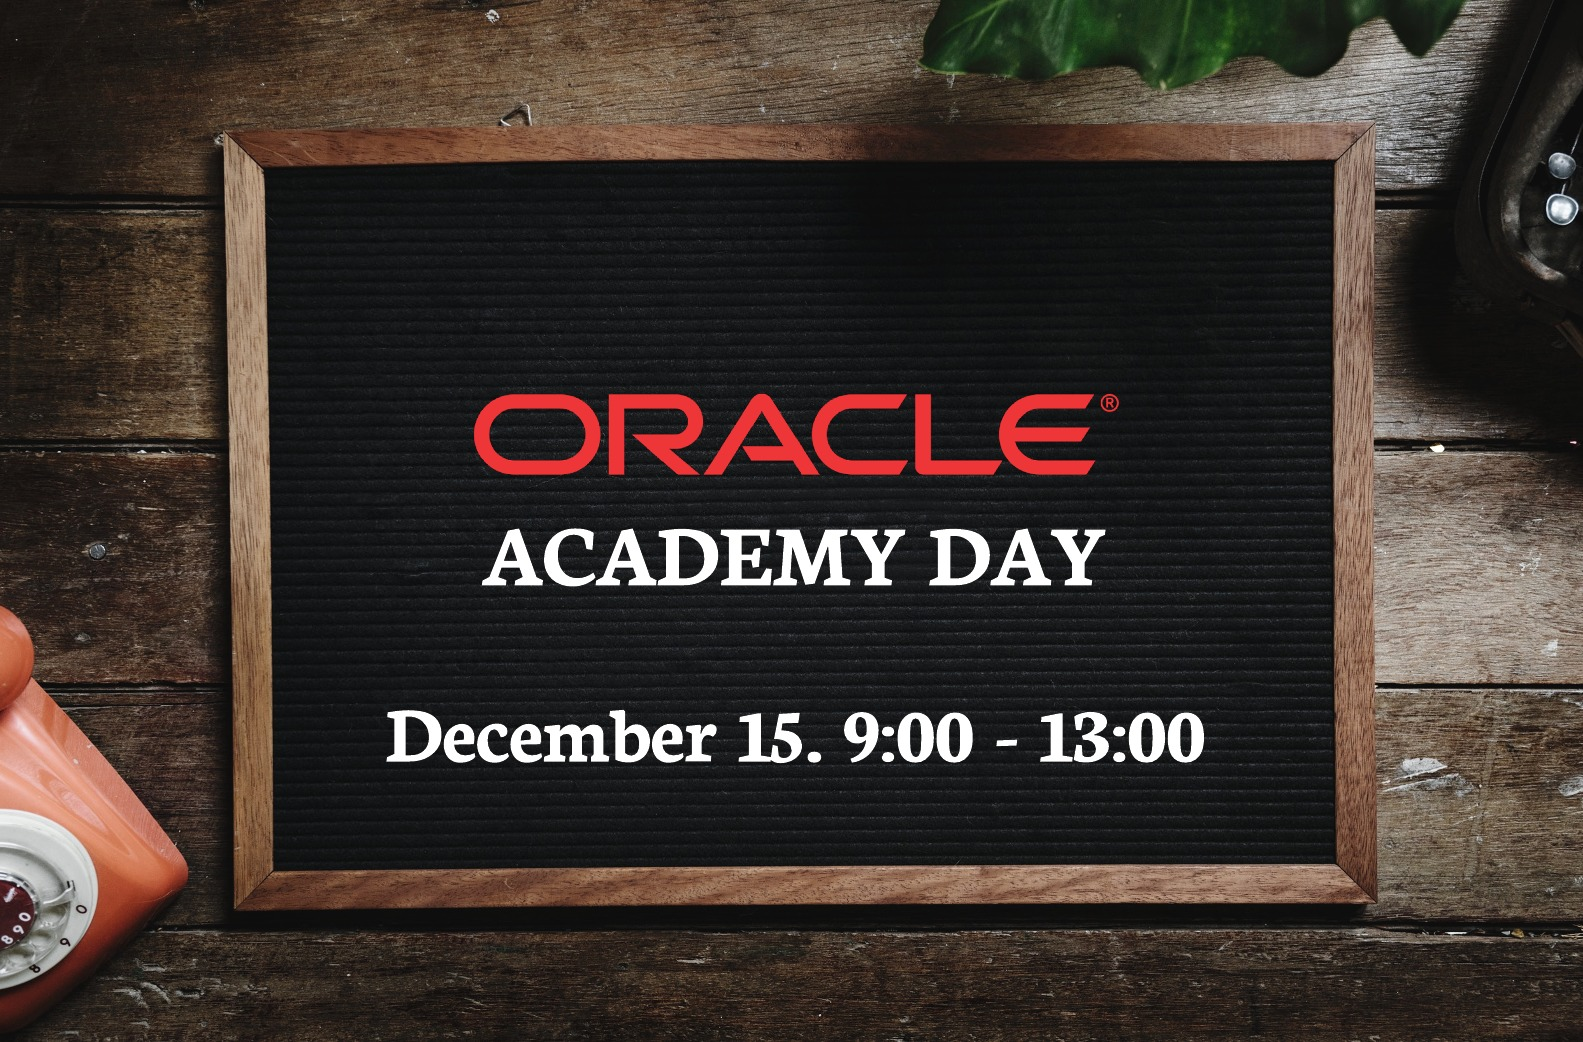 https://pcf.hu/wp-content/uploads/2018/12/Oracle-Academy-Day-Banner-1.jpeg